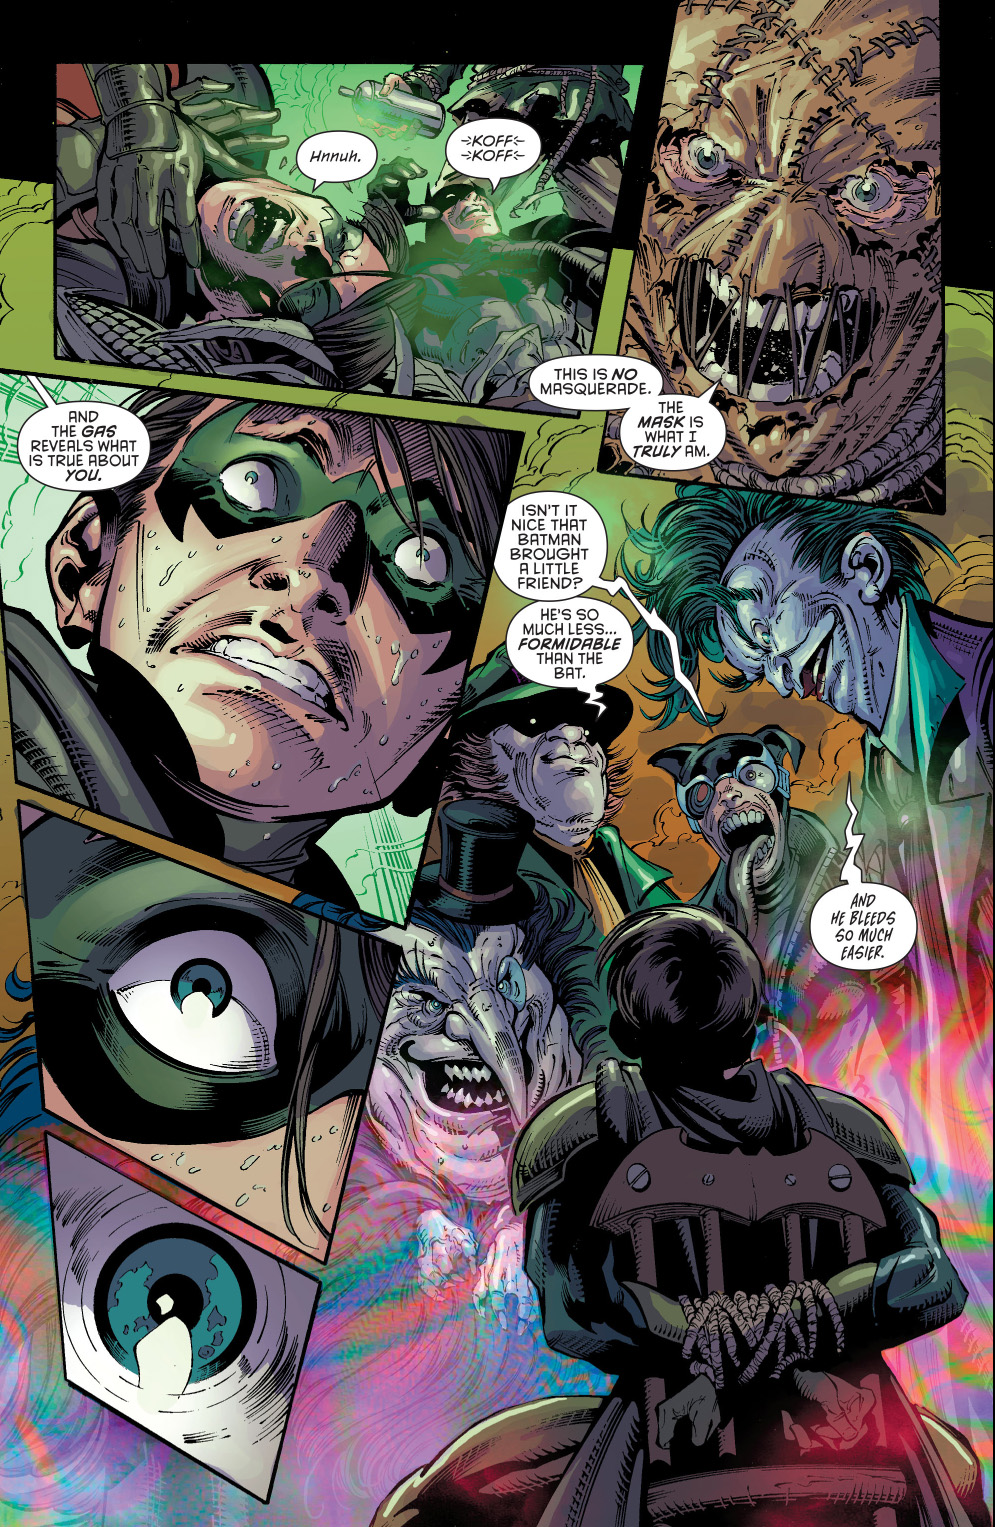 robin's hallucinations from the fear toxin (new 52)